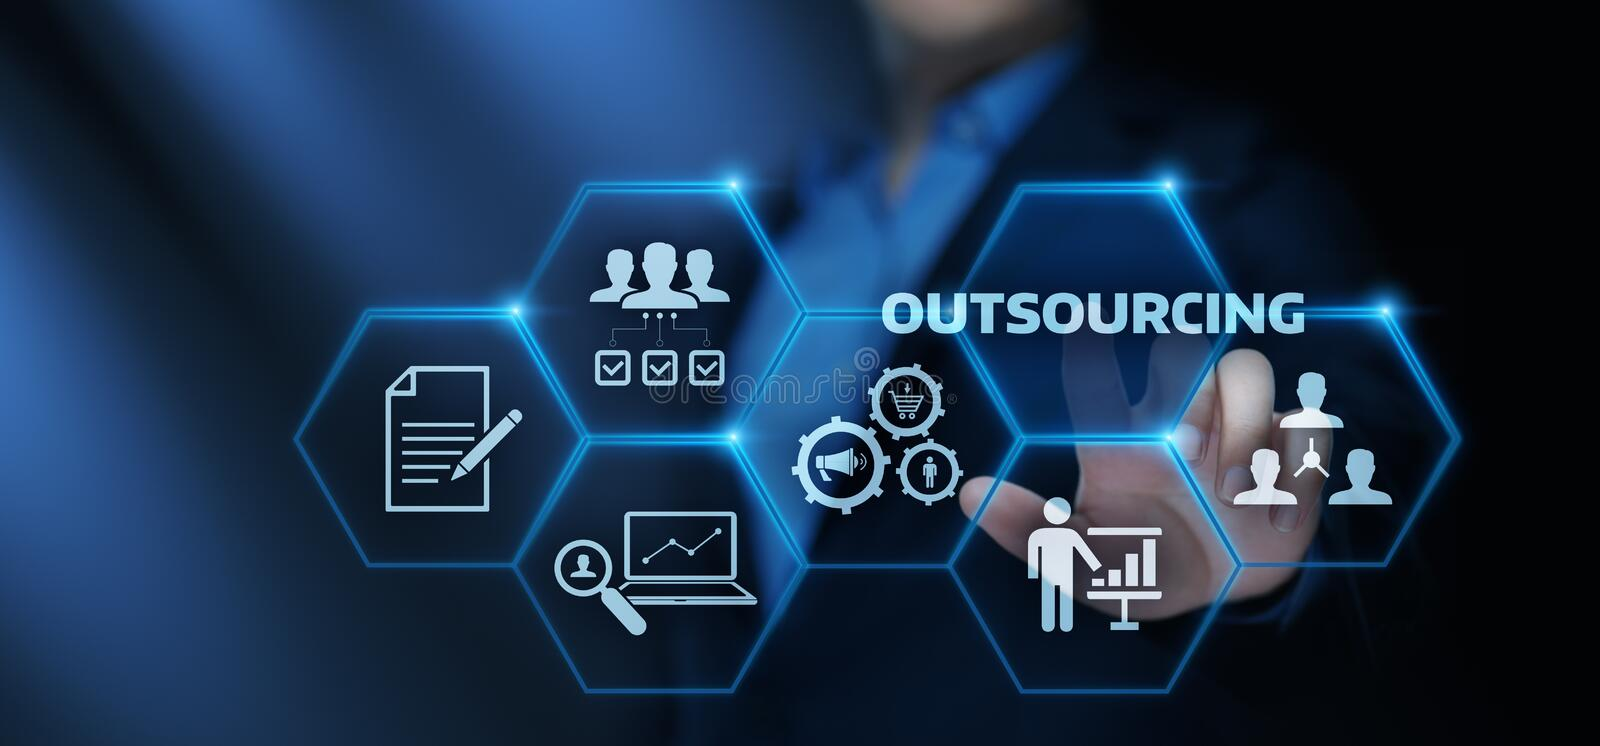 Outsourcing Human Resources Business Internet Technology Concept.  stock photo